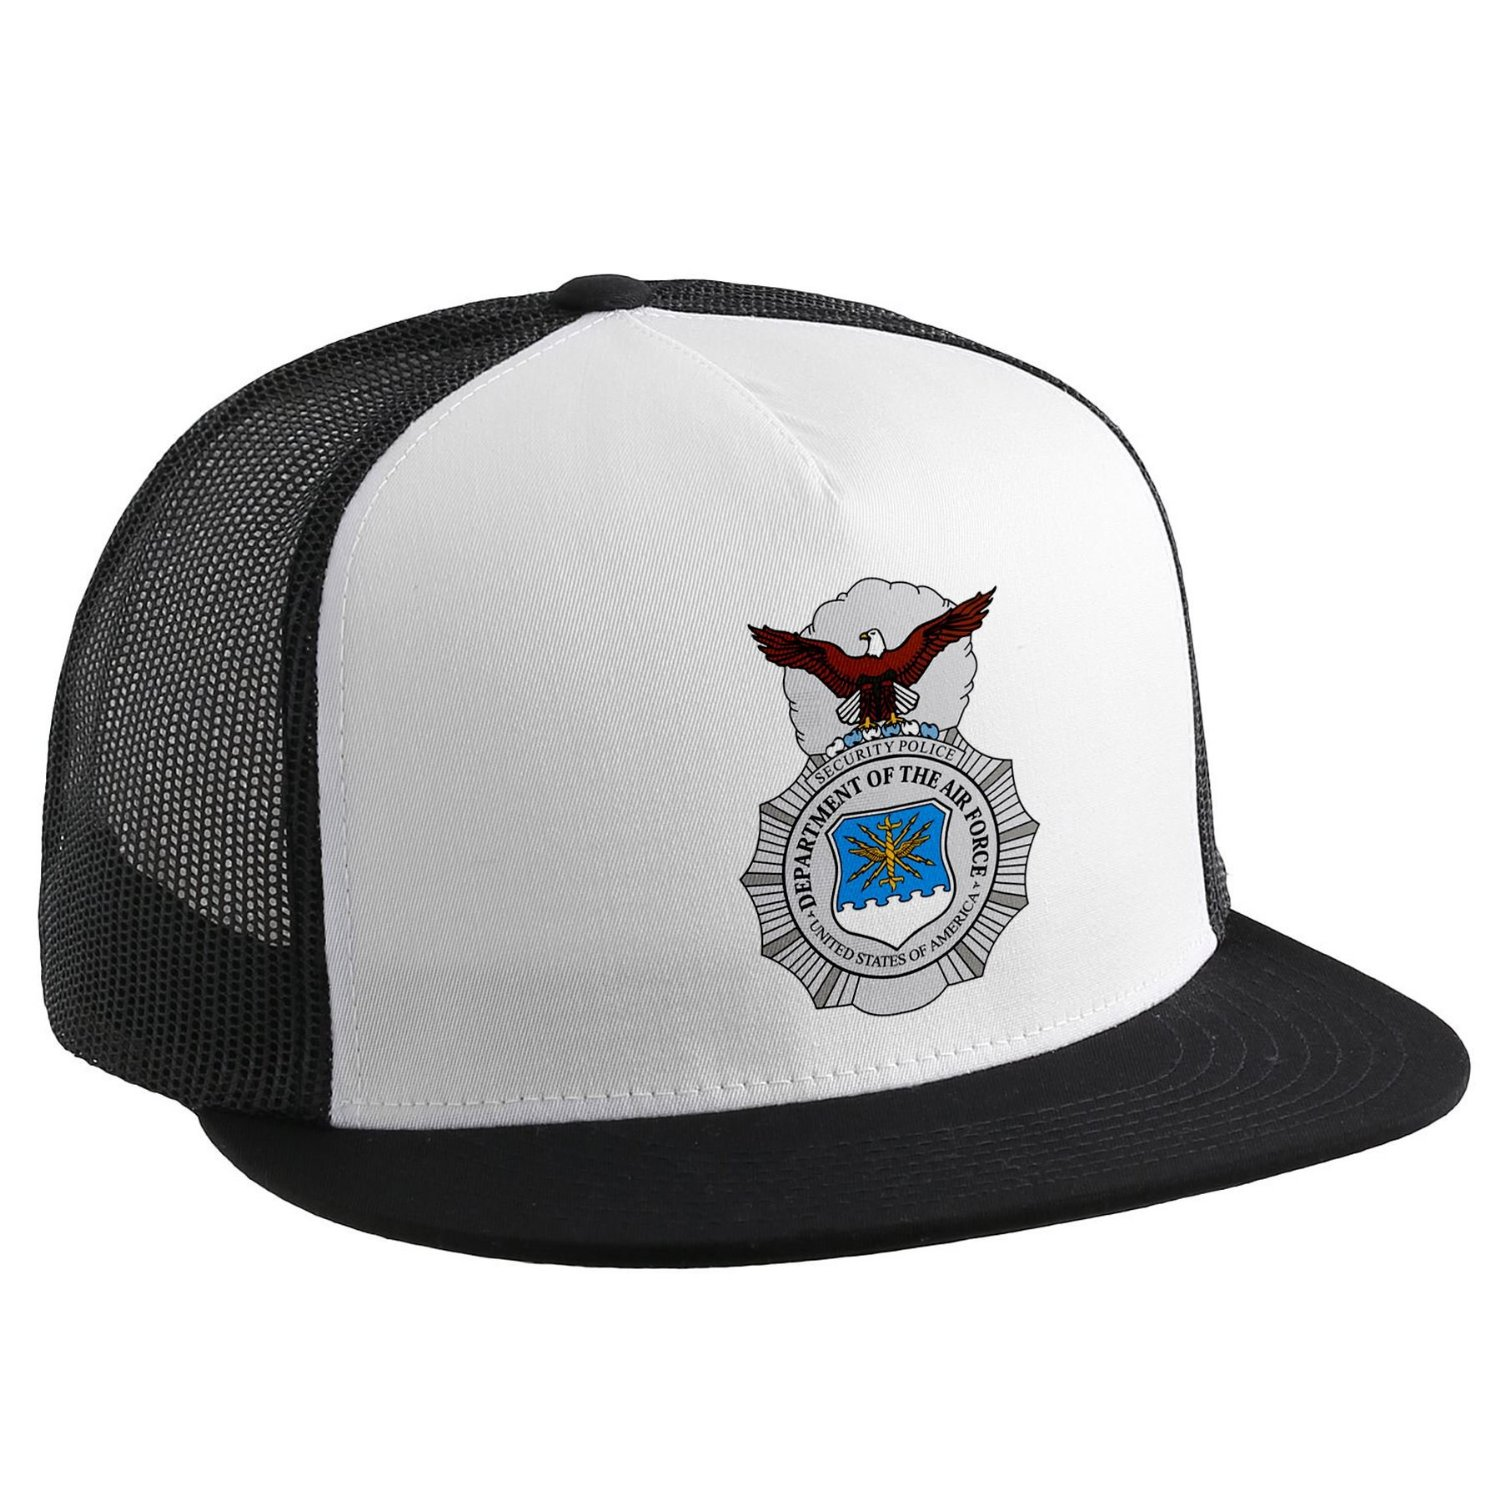 Get Quotations · Trucker Hat with U.S. Air Force Security Forces (AFSC) 207ad9cd4db